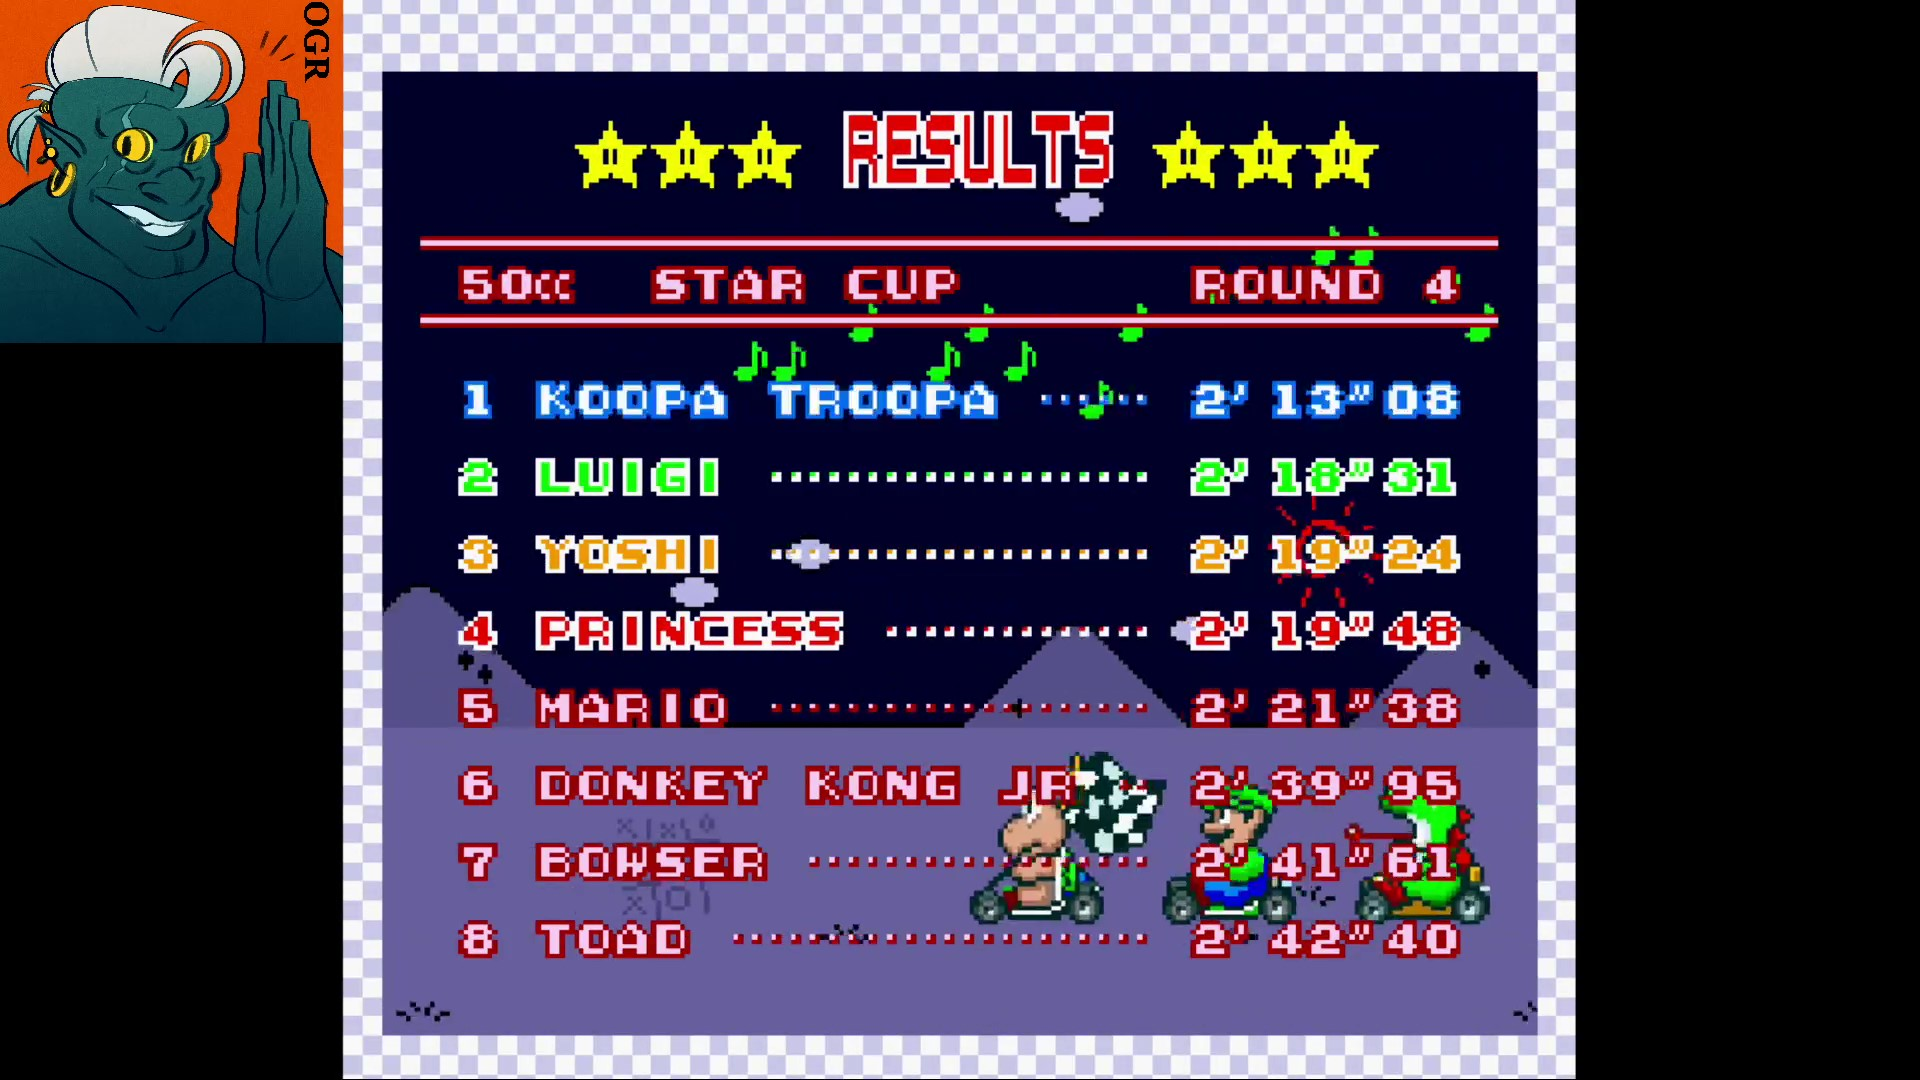 Super Mario Kart [Star Cup: Bowser Castle 3: 50CC] time of 0:02:13.08